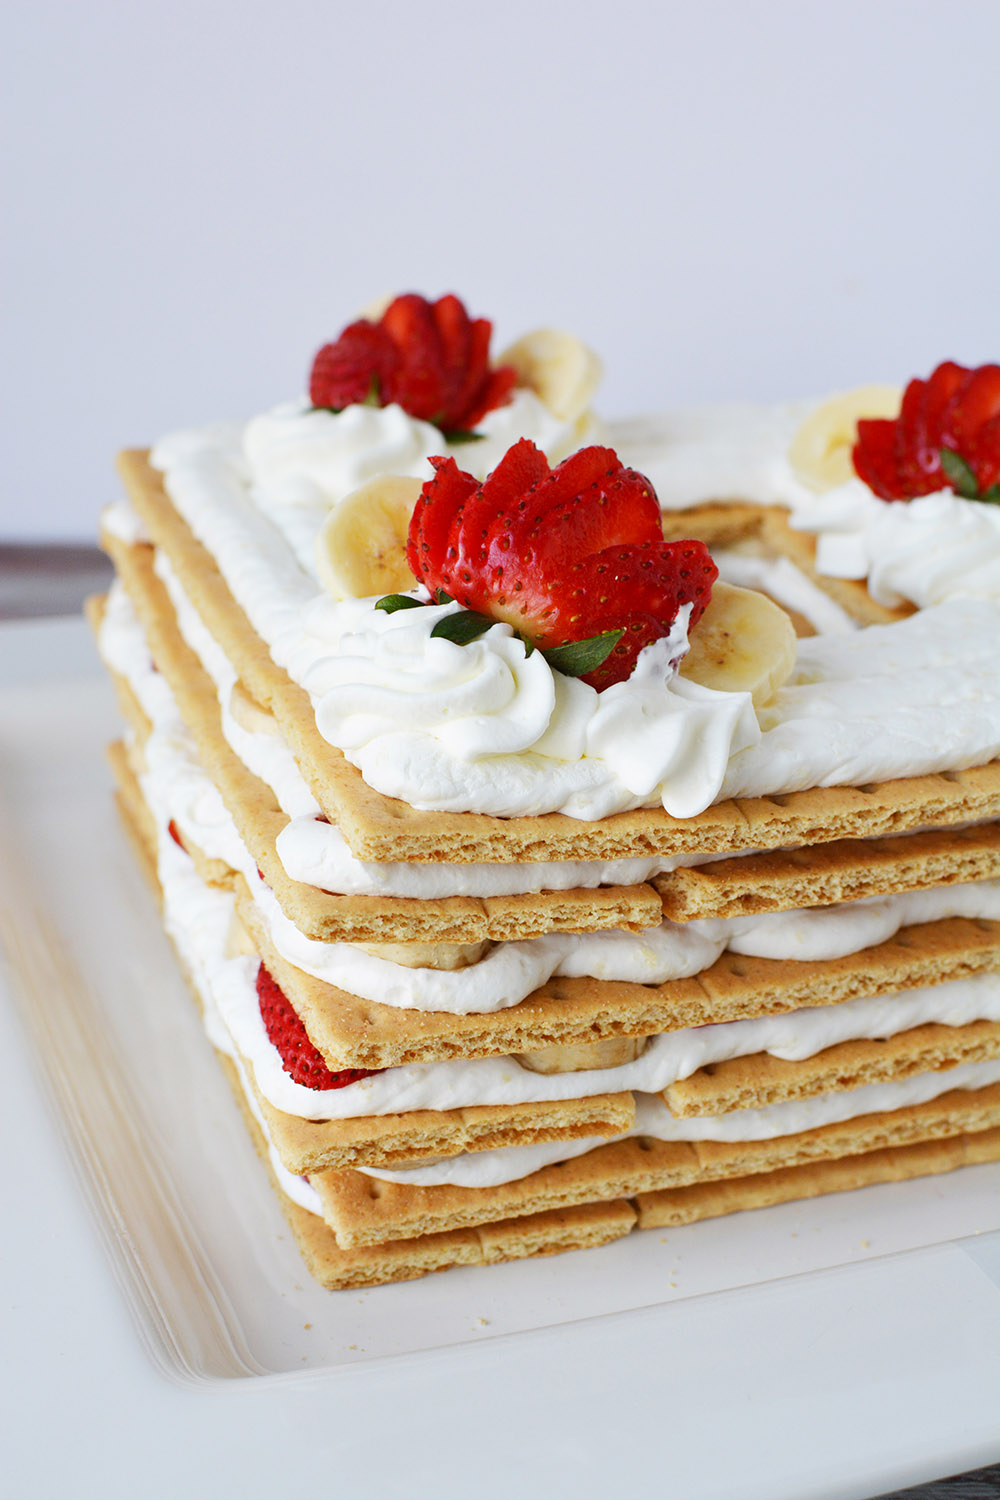 Layers of dessert into an ice box cake with strawberries.